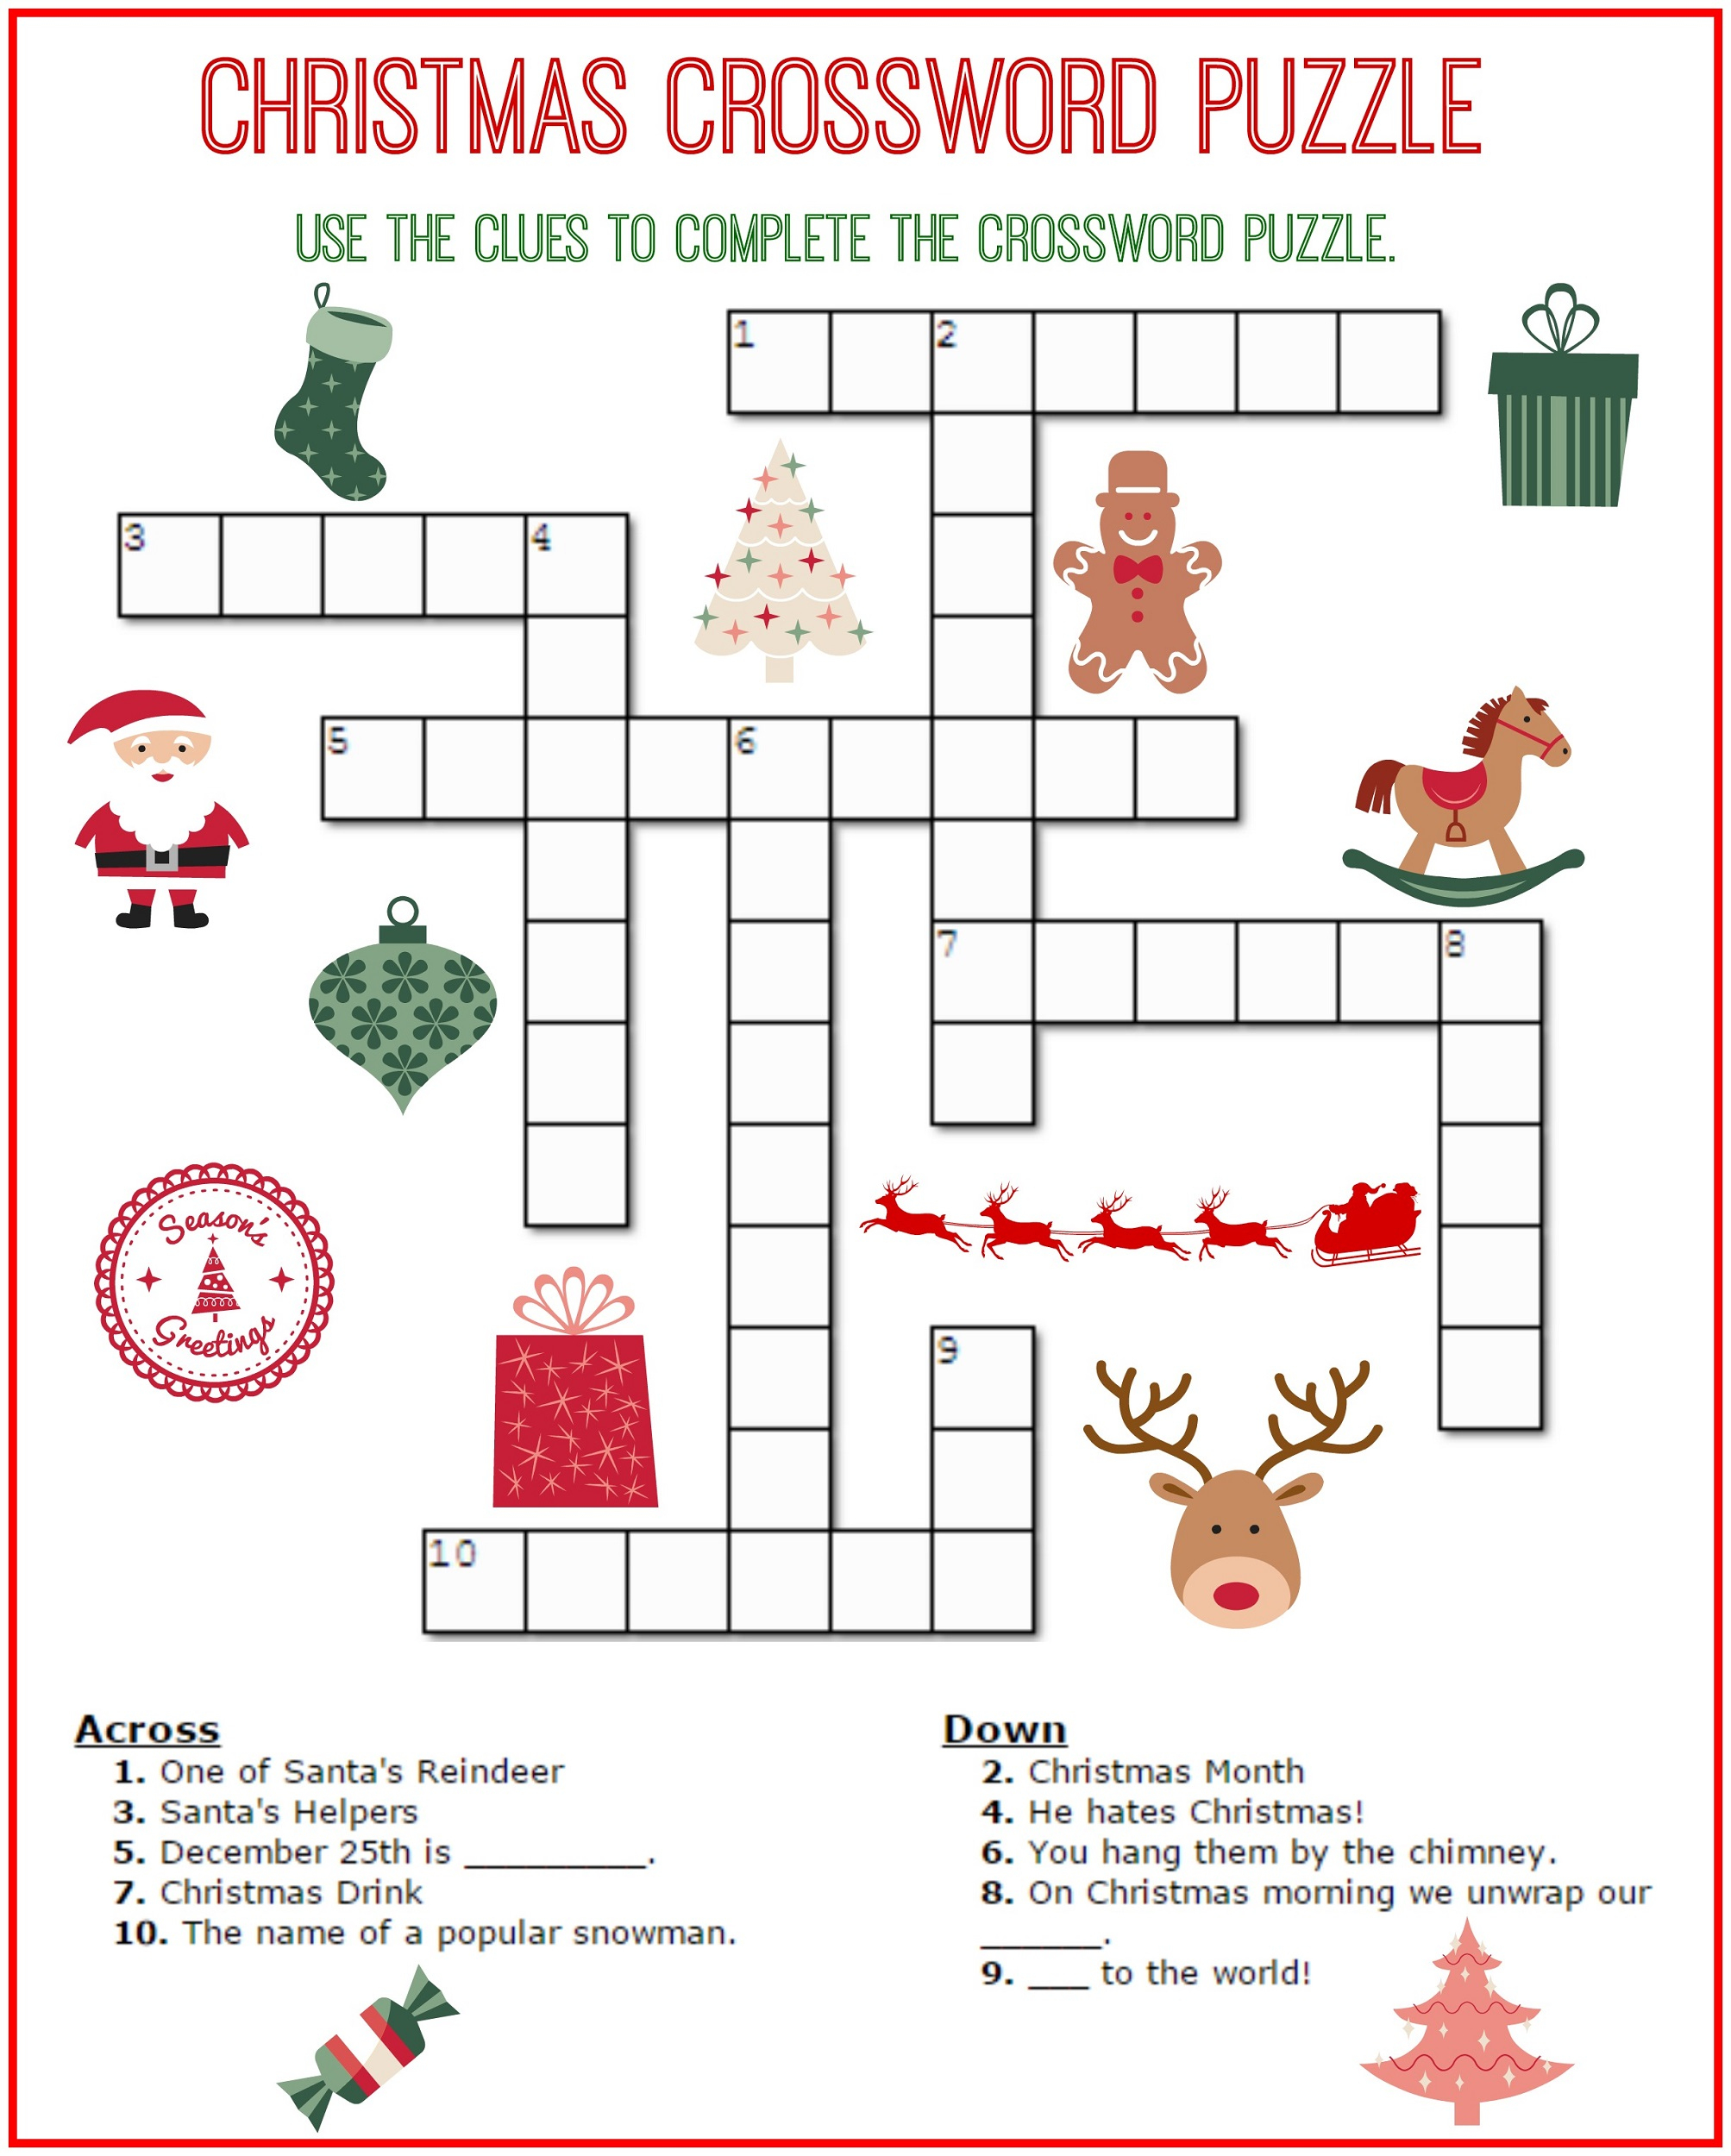 Crossword Puzzle Kids Printable 2017 | Kiddo Shelter - Printable Word Puzzles For 6 Year Olds